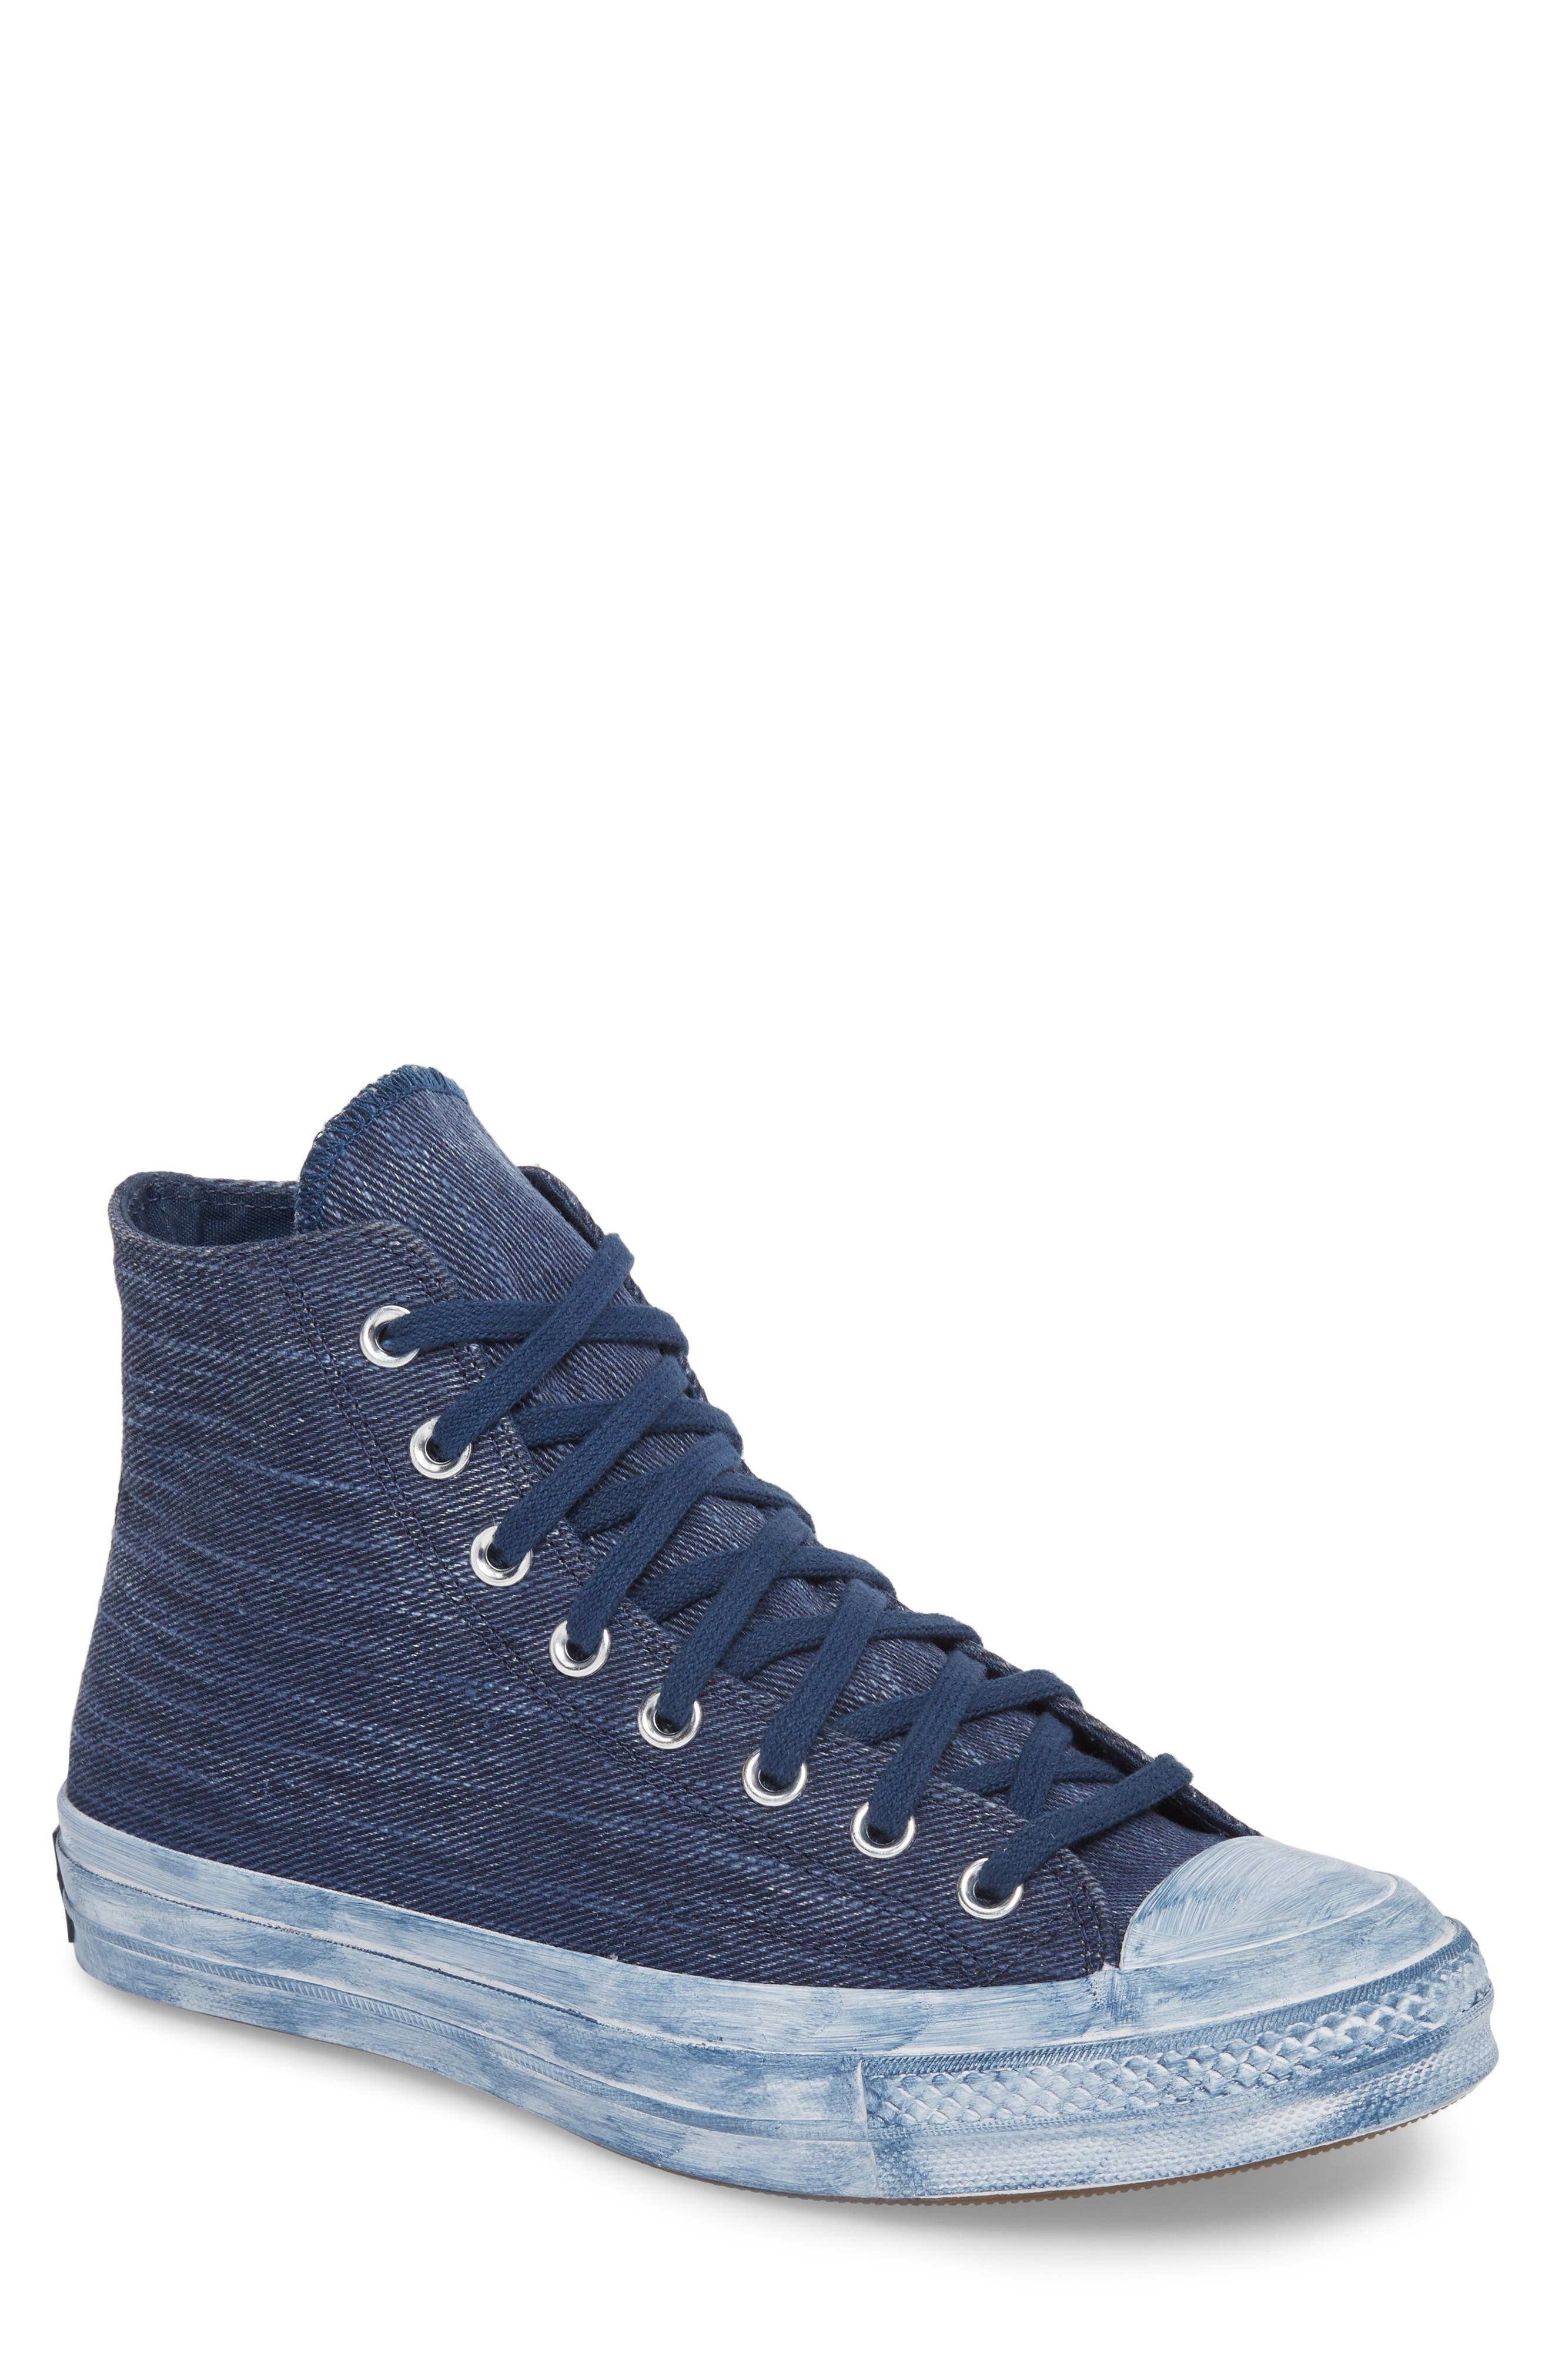 Chuck Taylor<sup>®</sup> All Star<sup>®</sup> Overdyed Linen High Top Sneaker,                         Main,                         color, Navy